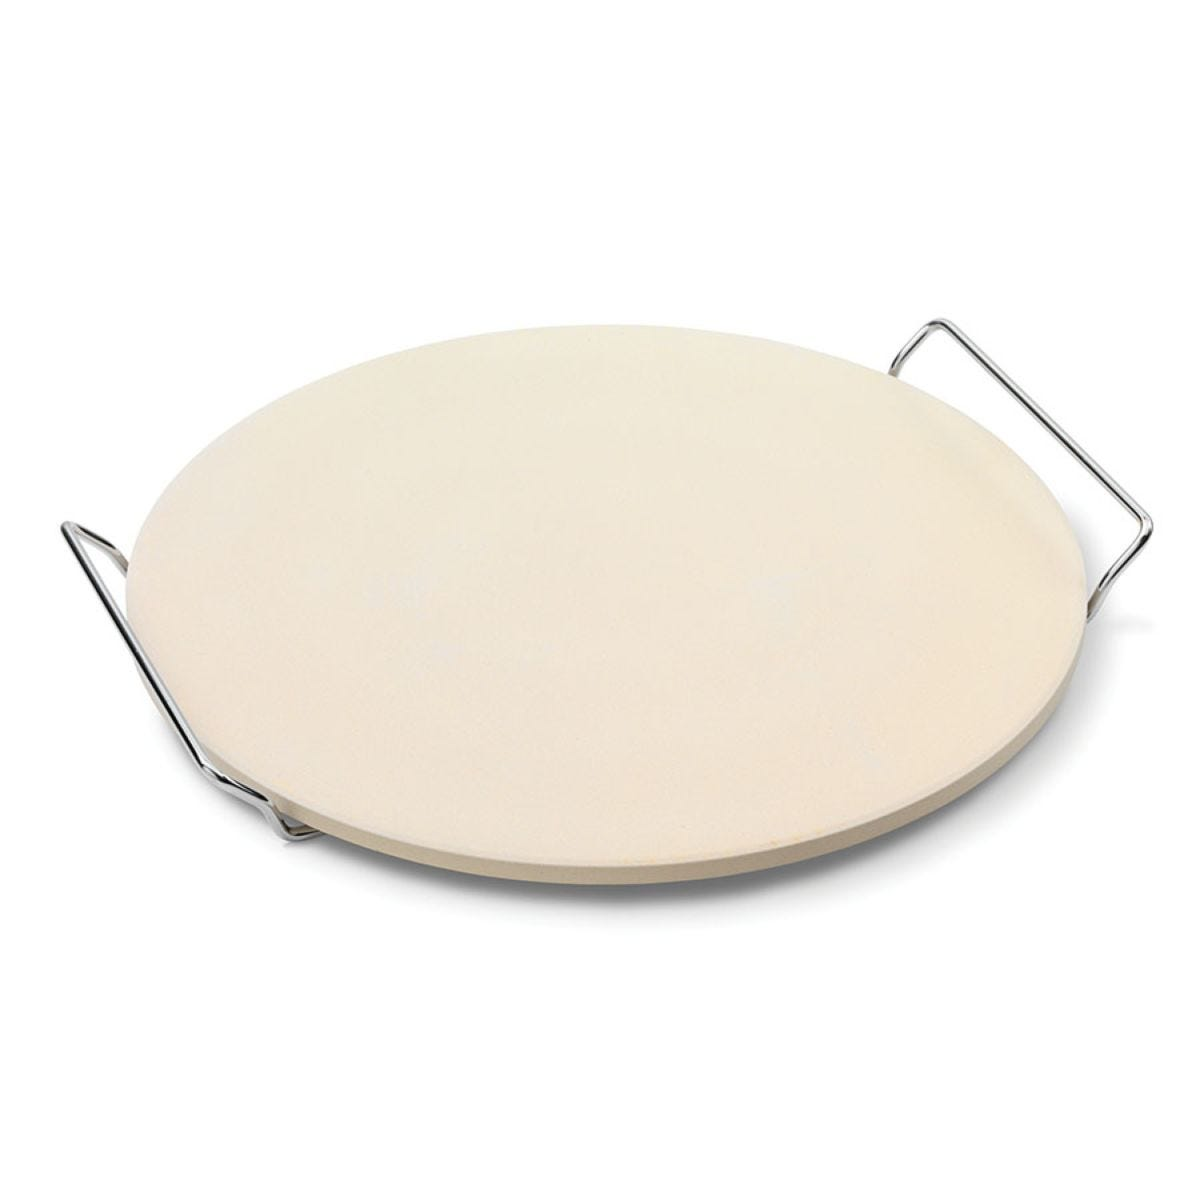 Jamie Oliver Ceramic Pizza Stone - Cream